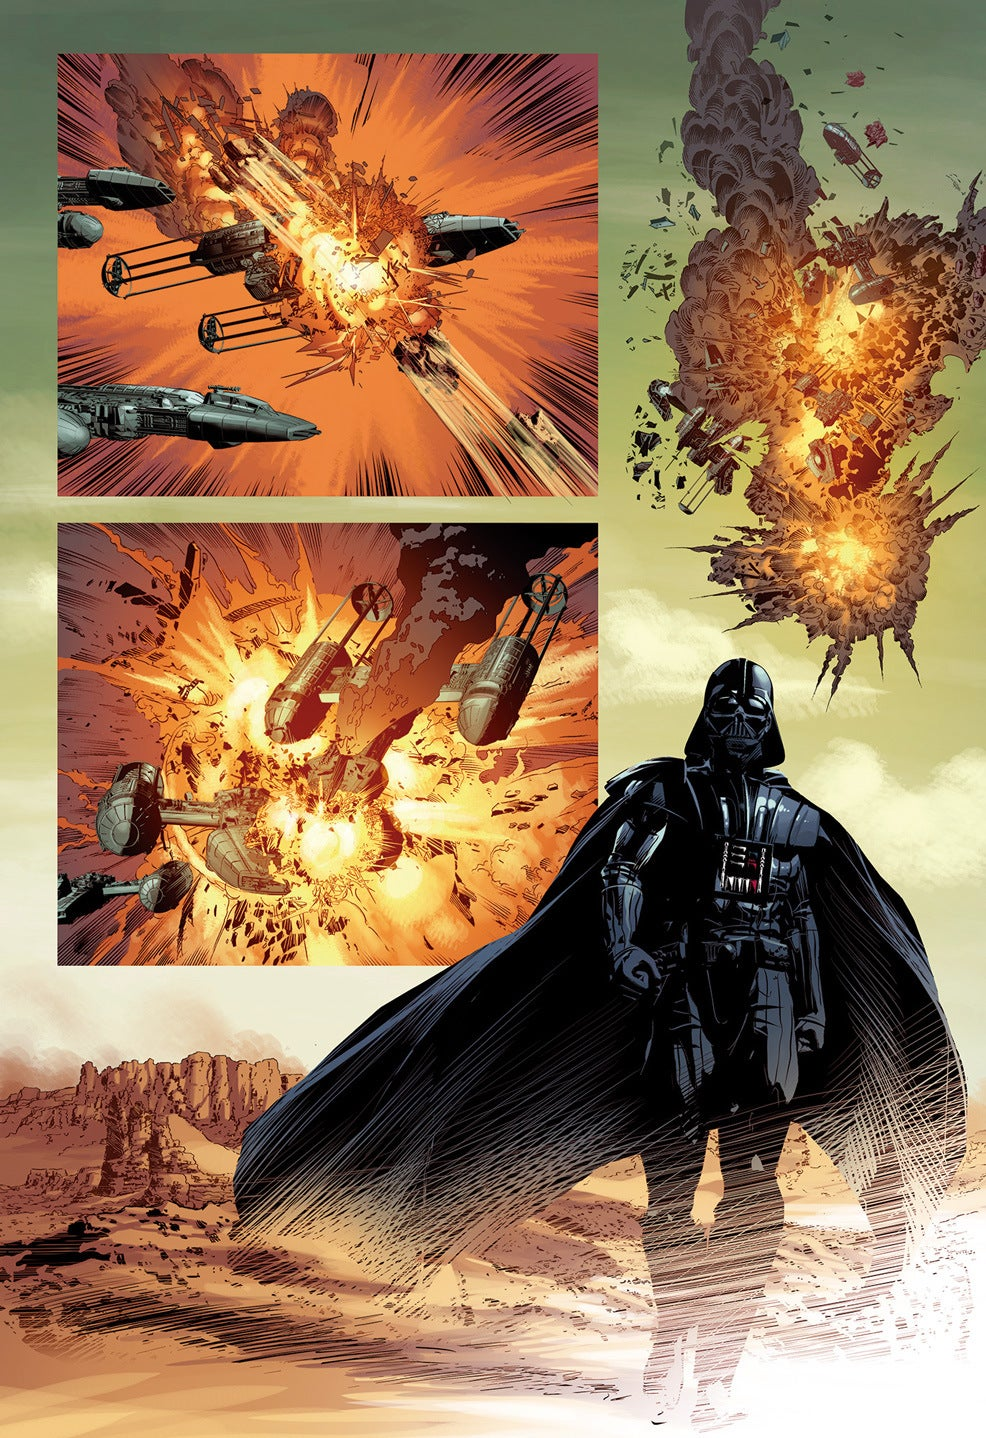 Luke and Vader Face Off in Marvel's Best Star Wars Comic So Far